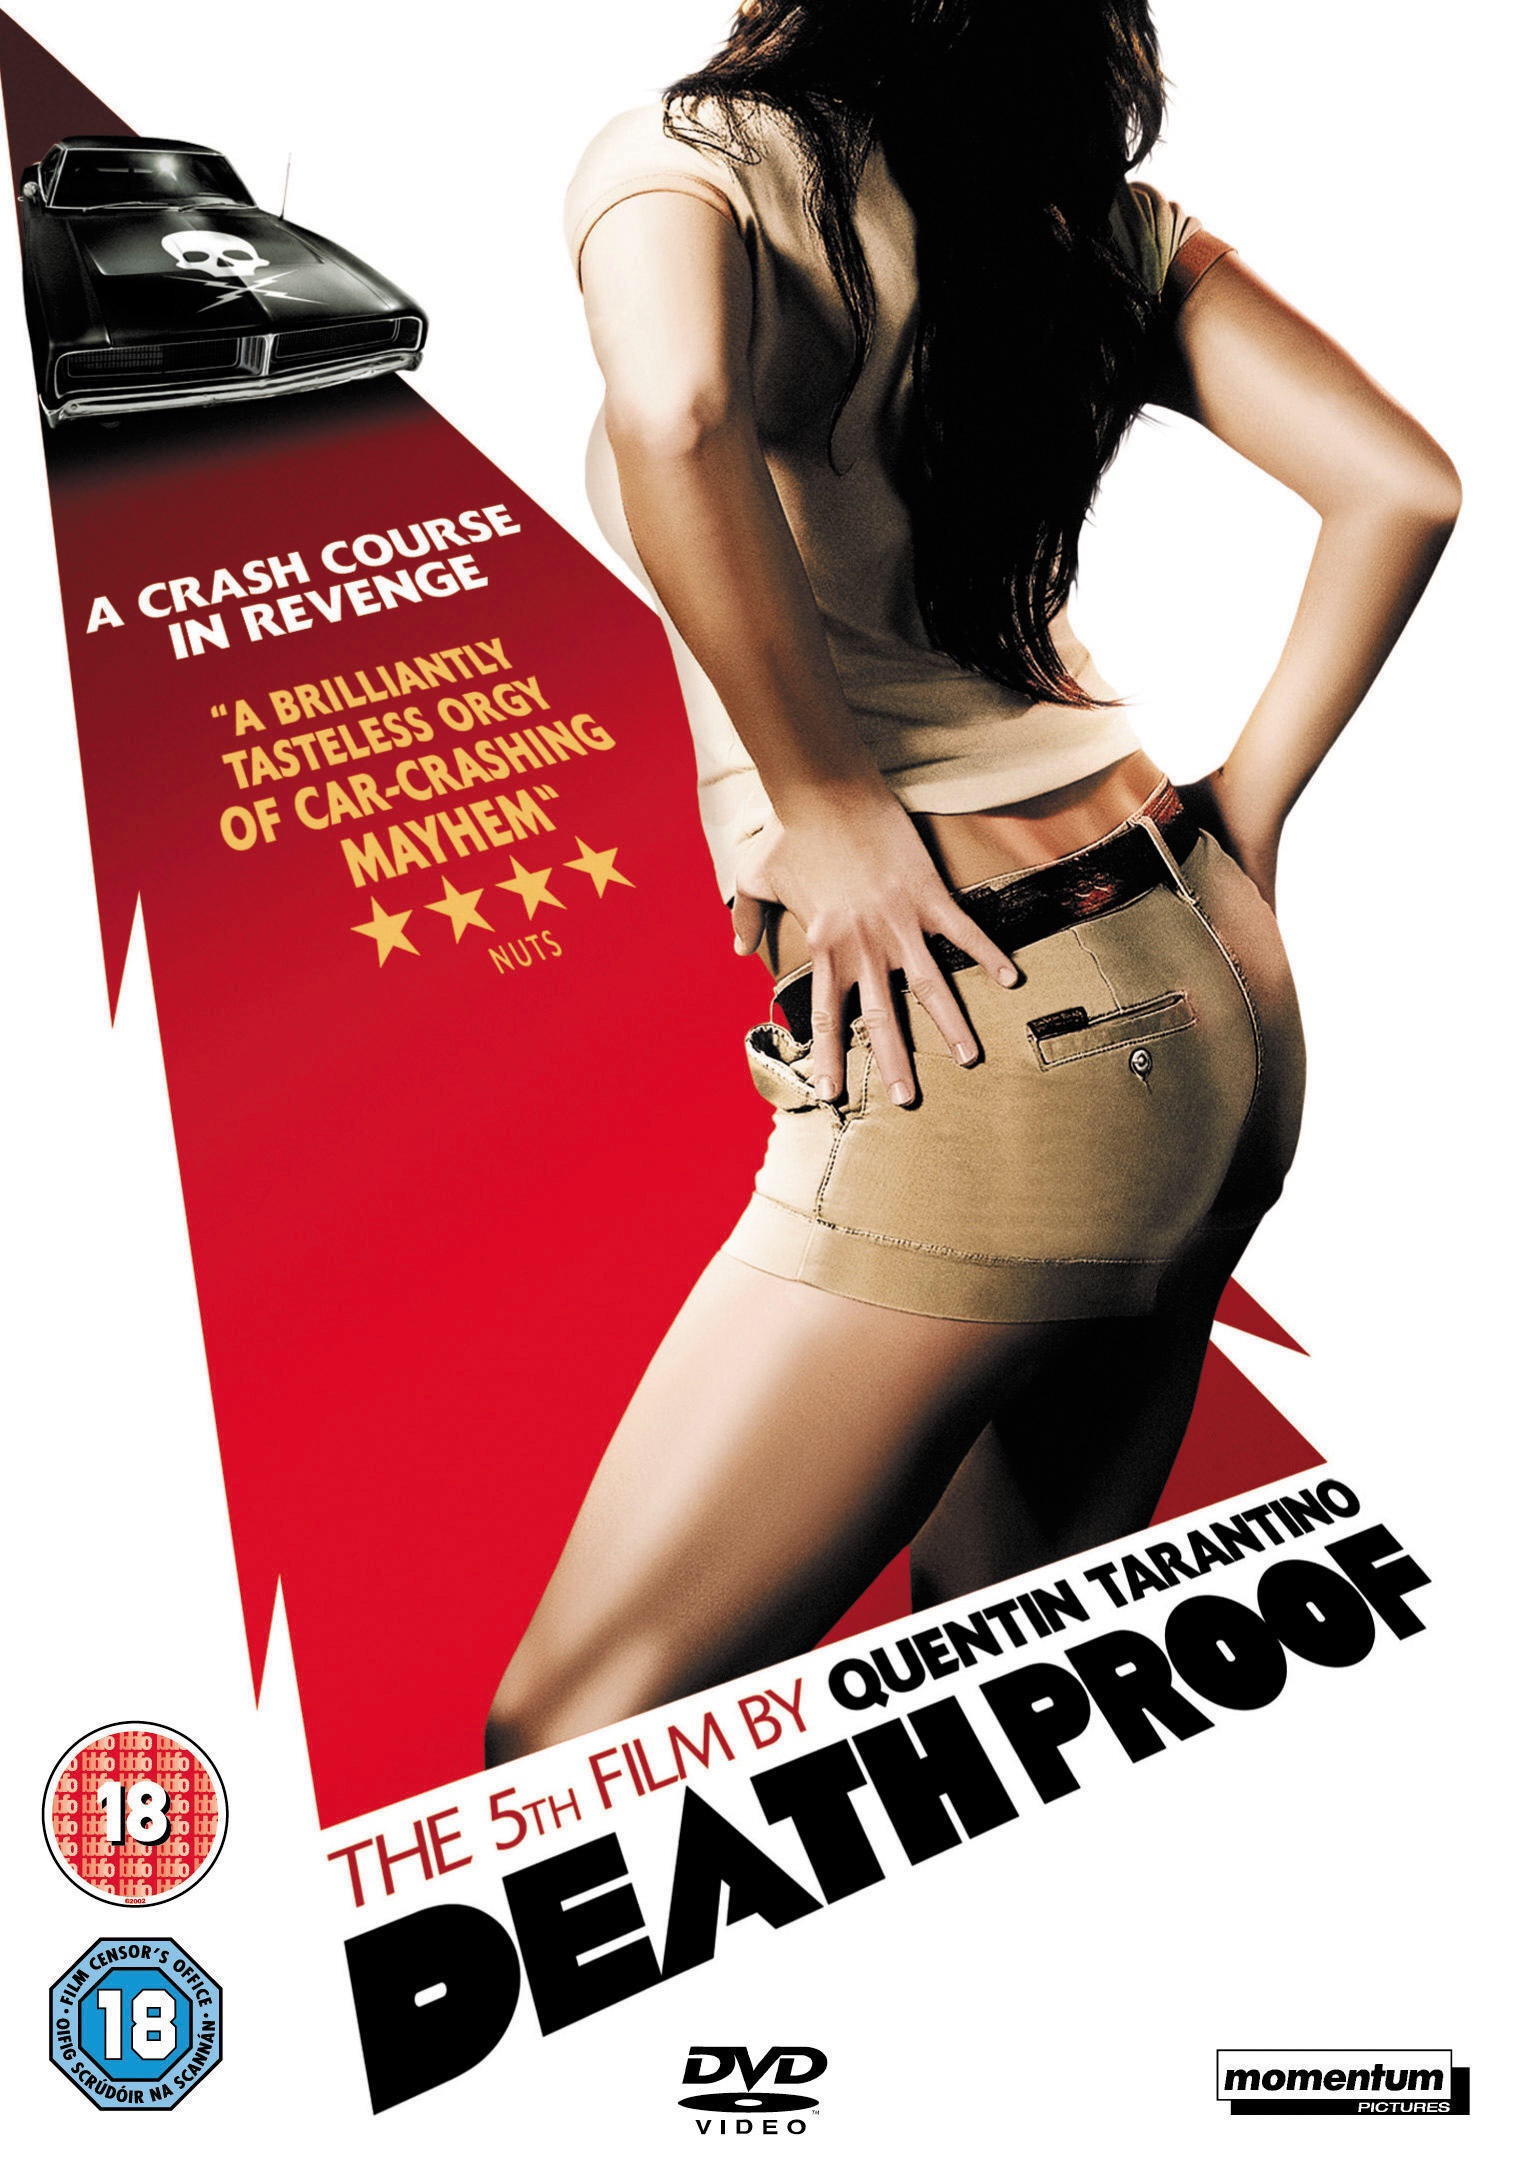 The Death Proof poster showing the muscle car in the top left corner and a headless woman in short shorts is in the bottom right corner